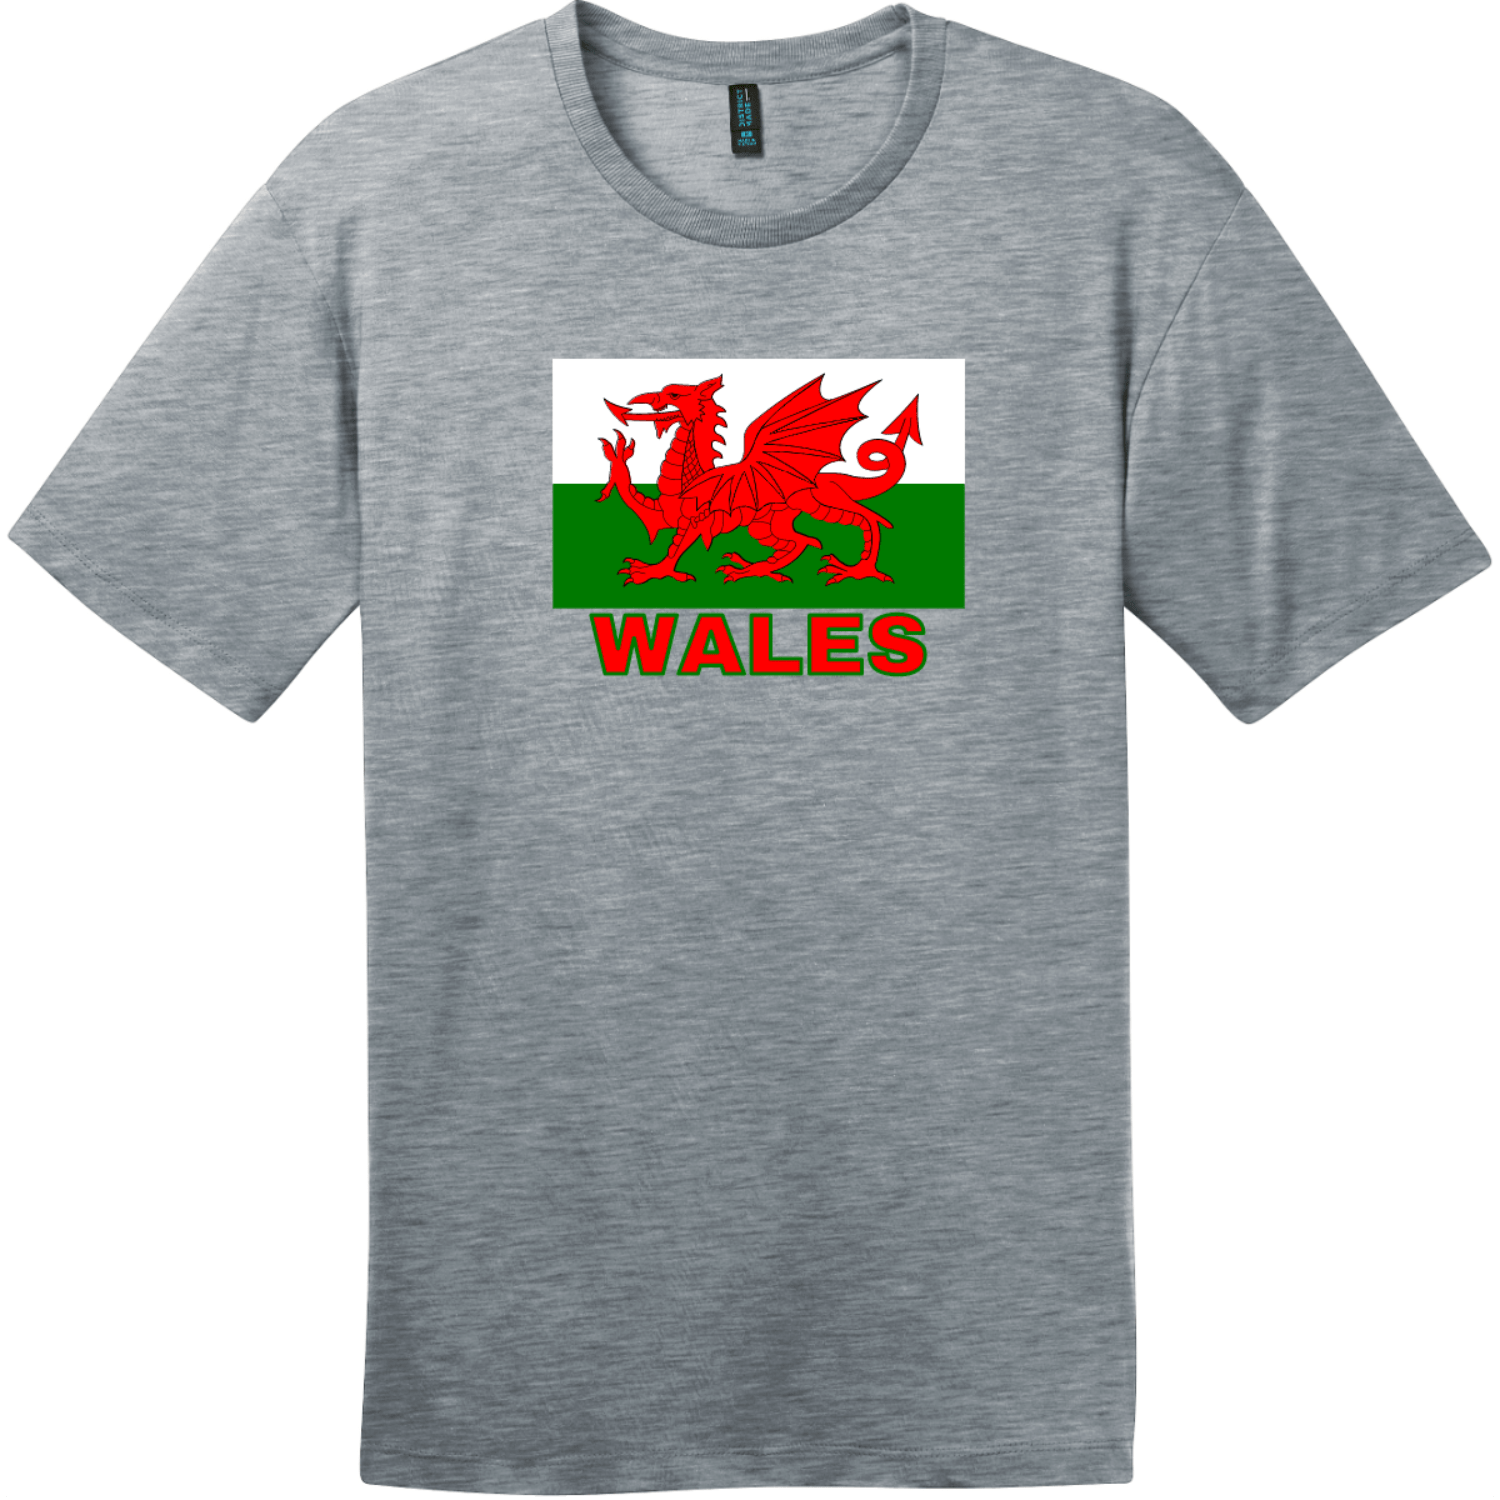 Wales Flag T-Shirt Heathered Steel District Perfect Weight Tee DT104